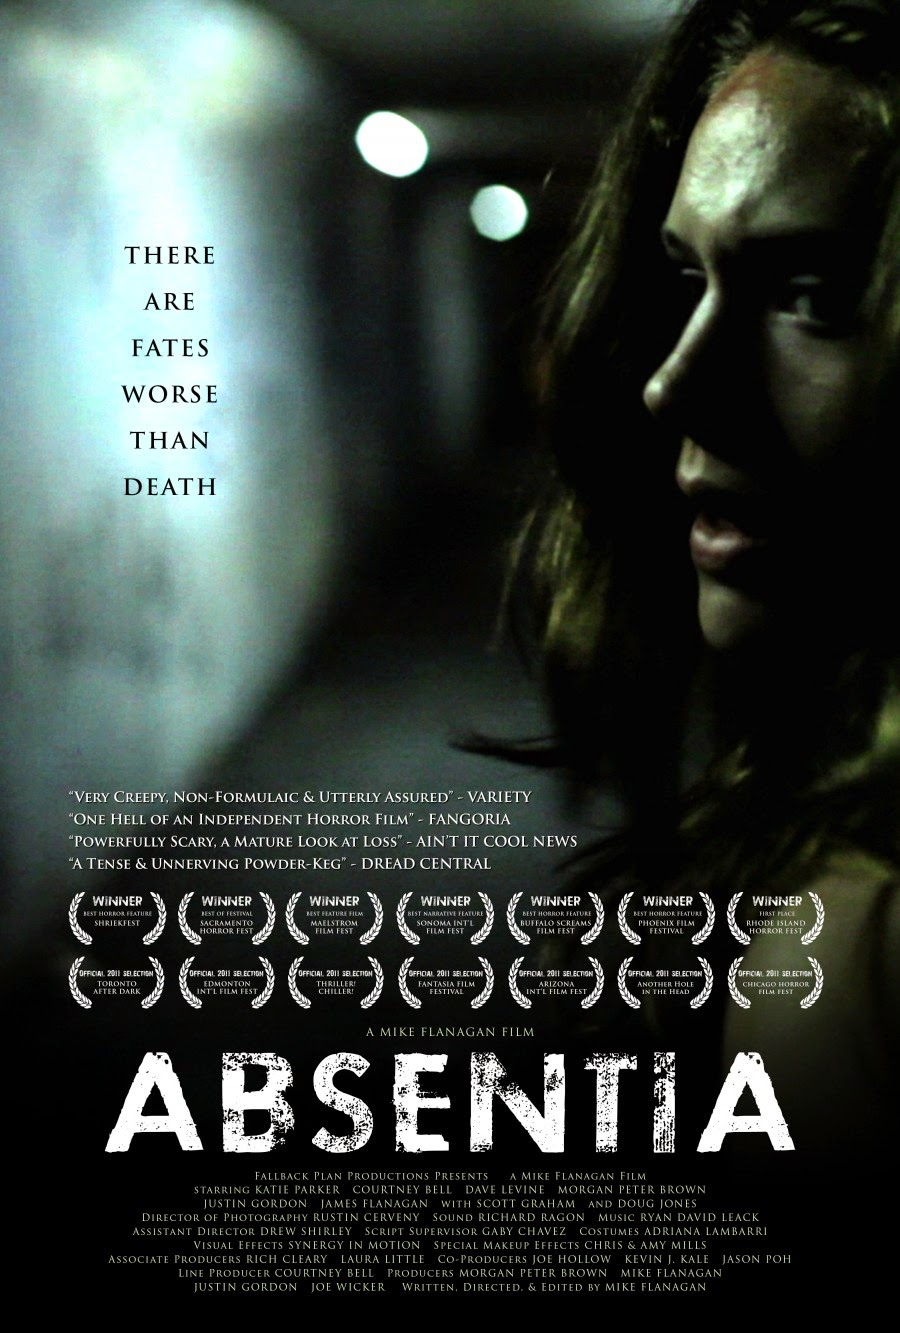 Nessun timore: A Dreadful Decade (Part VIII): Absentia (2011